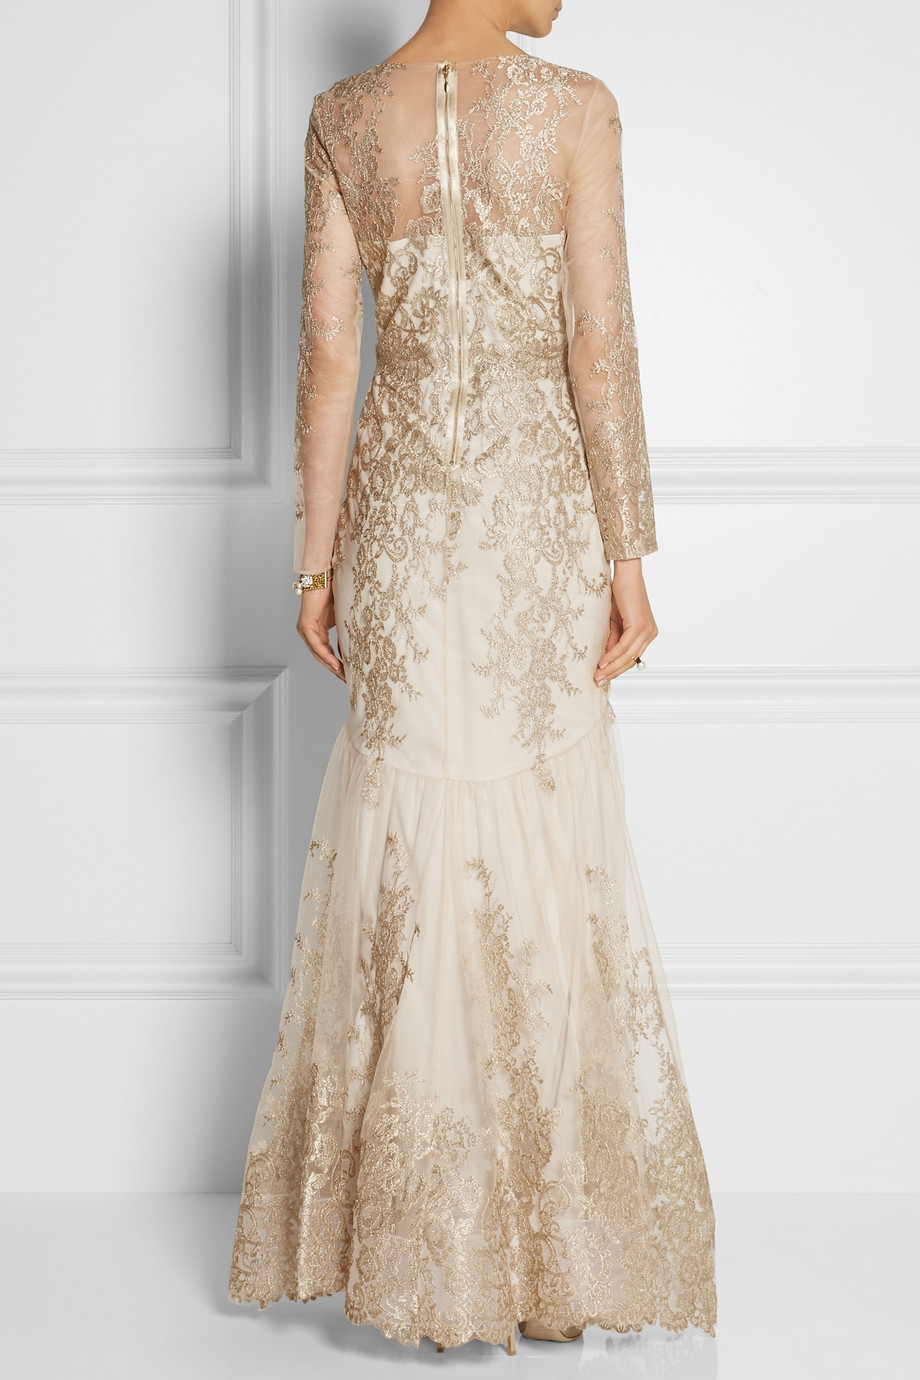 5d225c3fa14 Marchesa notte Embroidered Tulle Gown in Metallic - Lyst